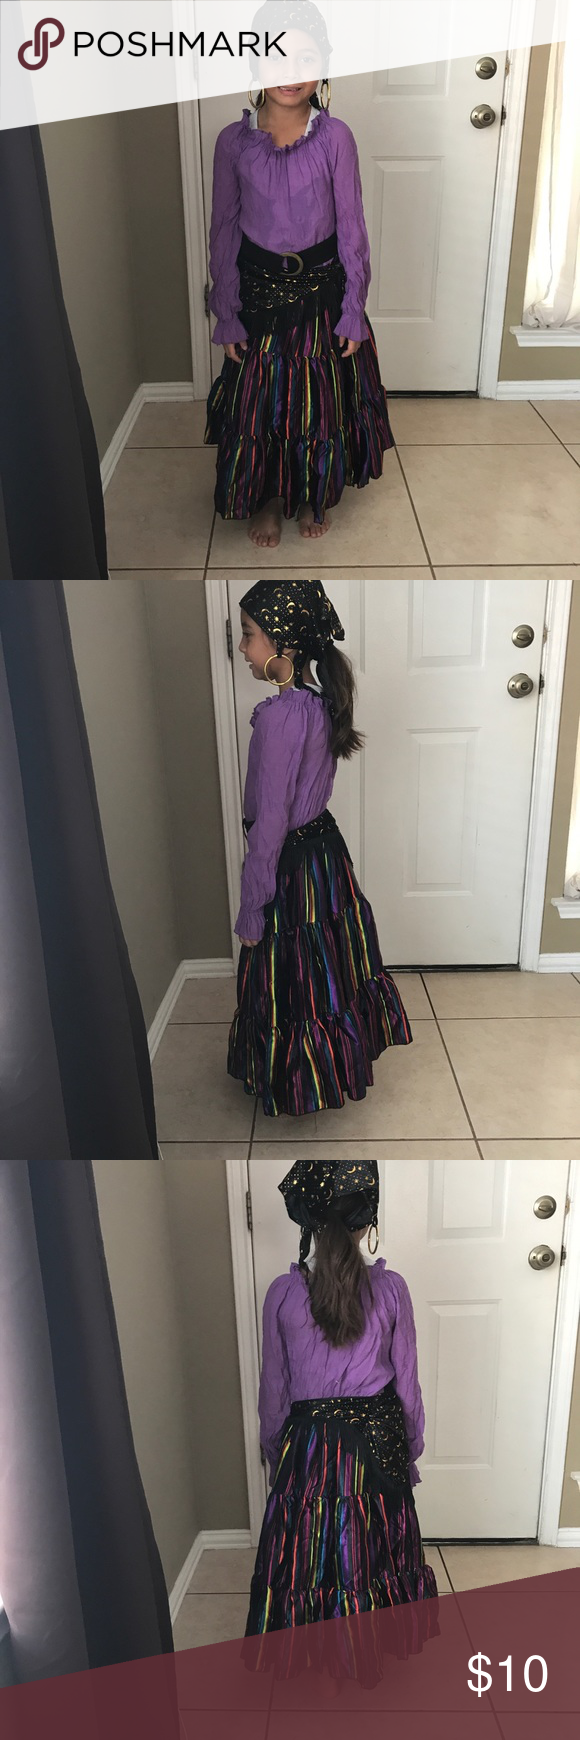 Fortune teller costume (girls) Used condition  My daughter